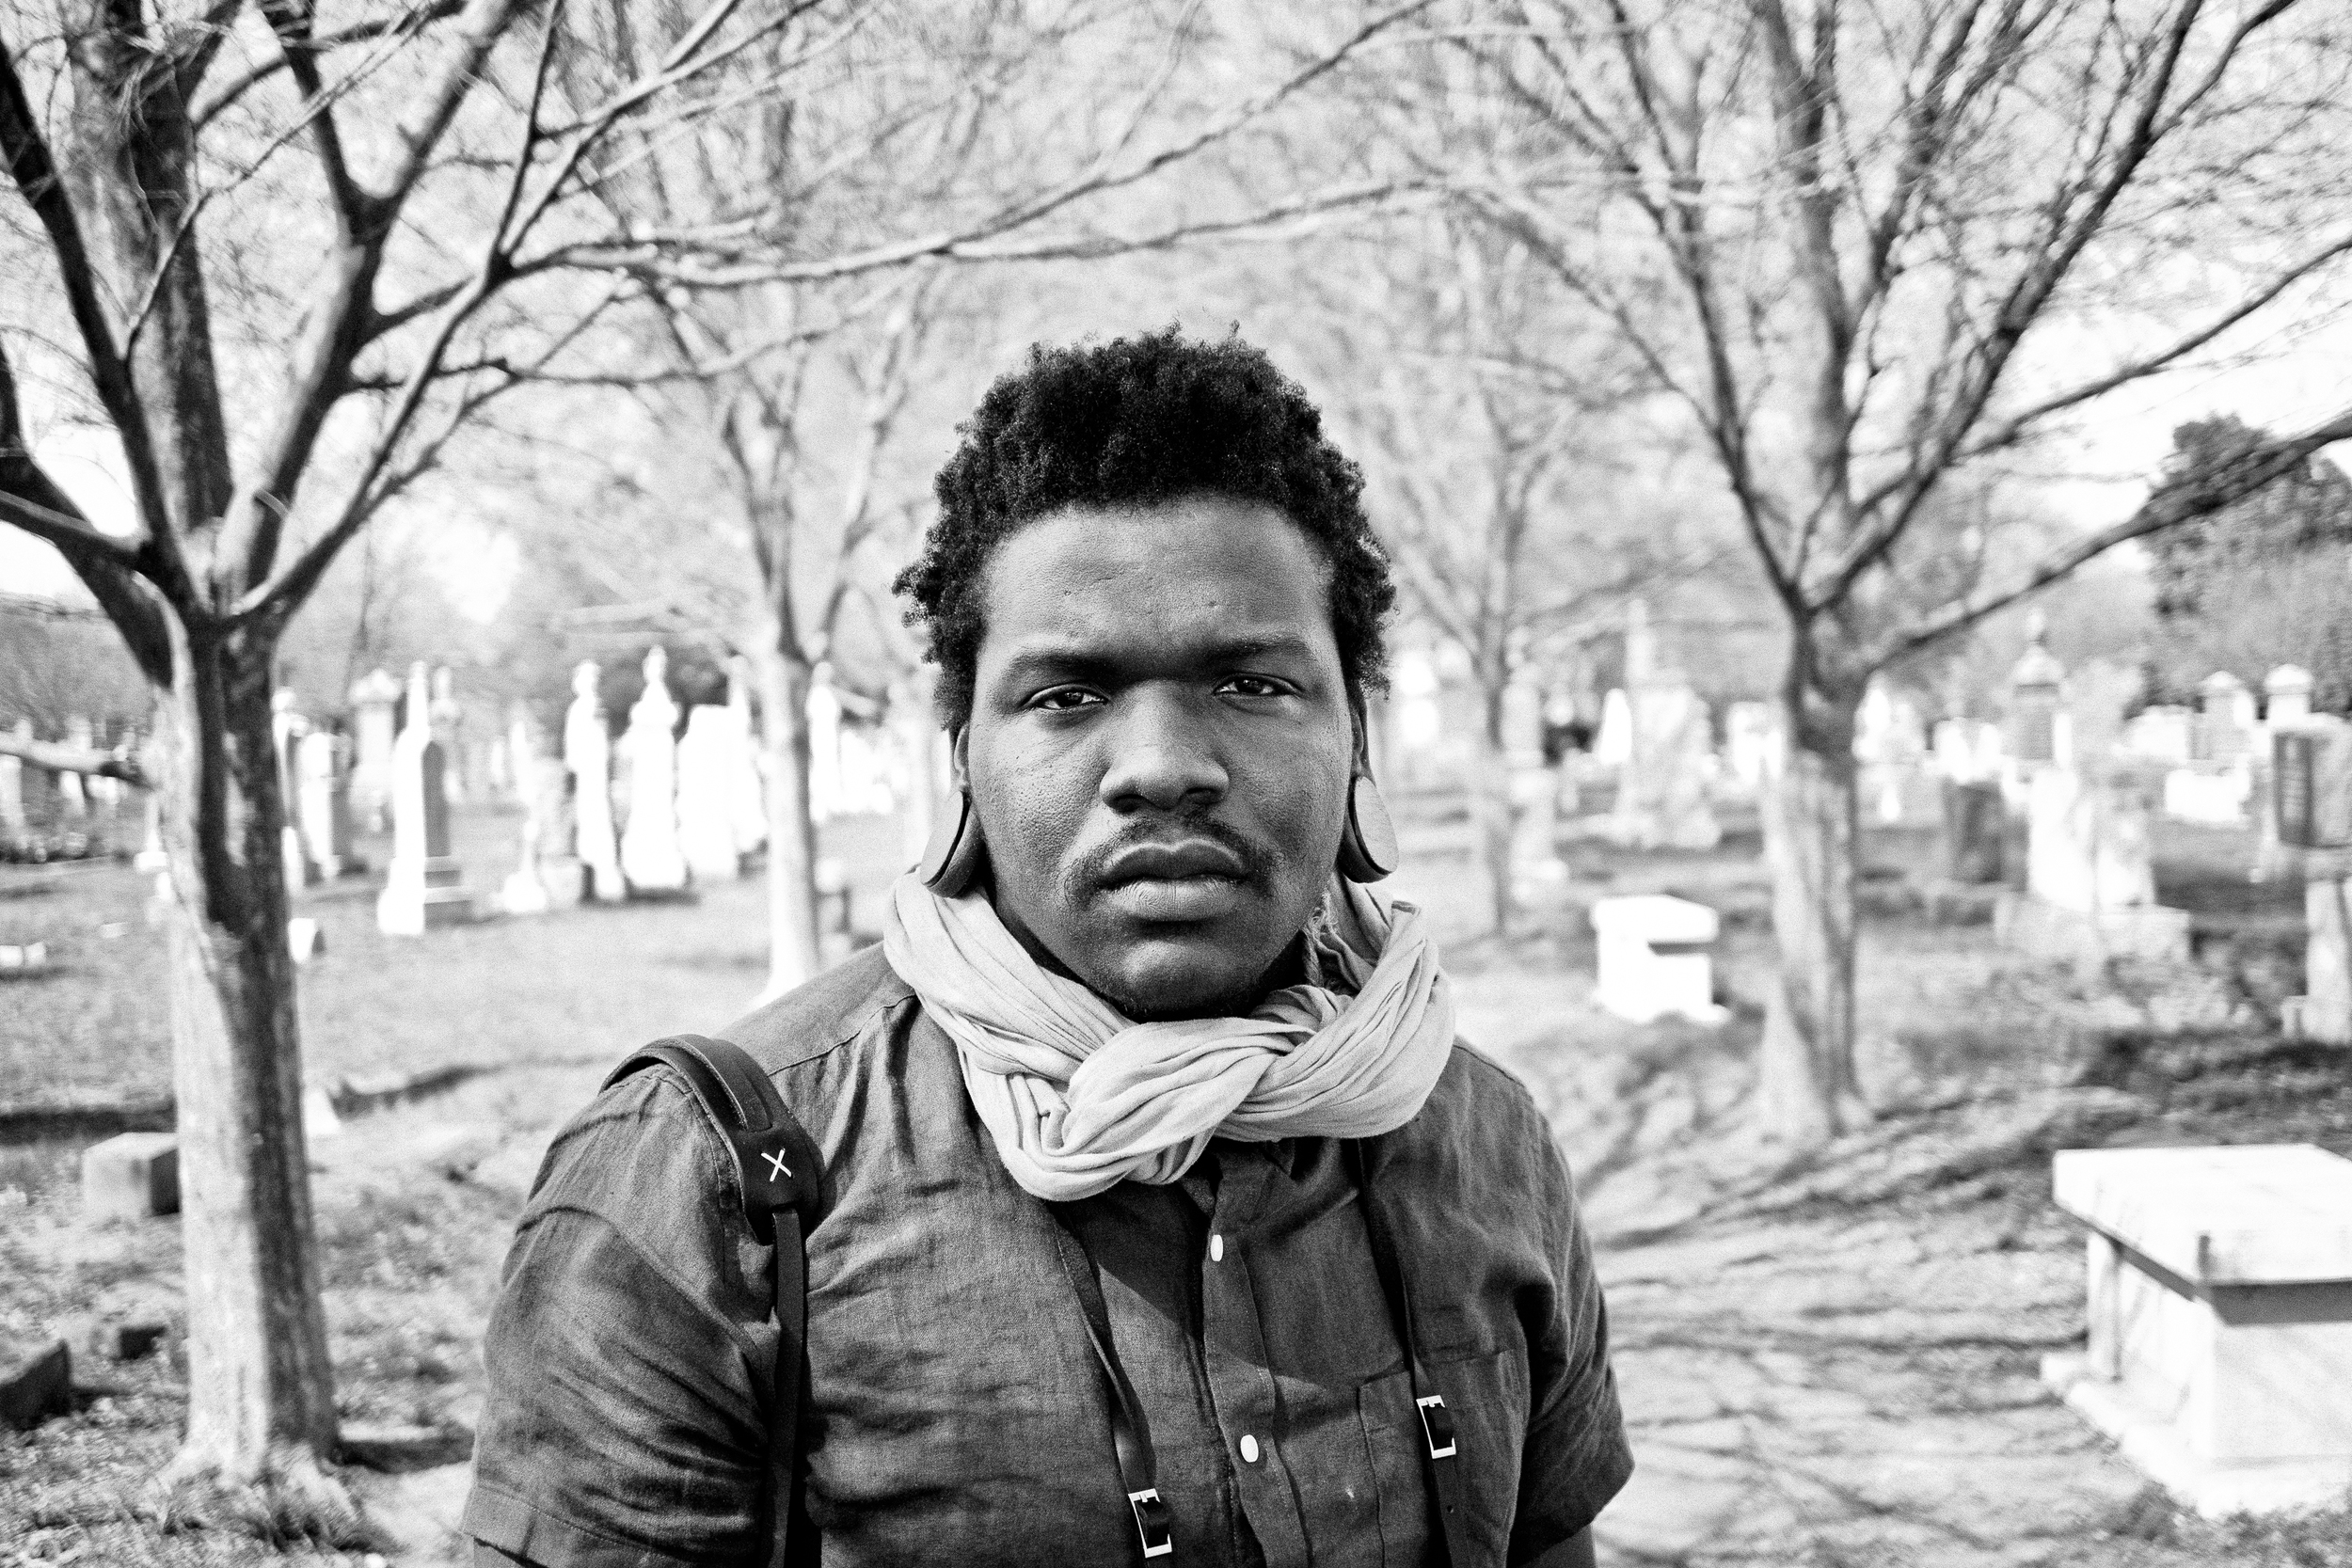 Personal work shot at Congressional Cemetery,featuring DC-based photographer  Donovan Gerald .